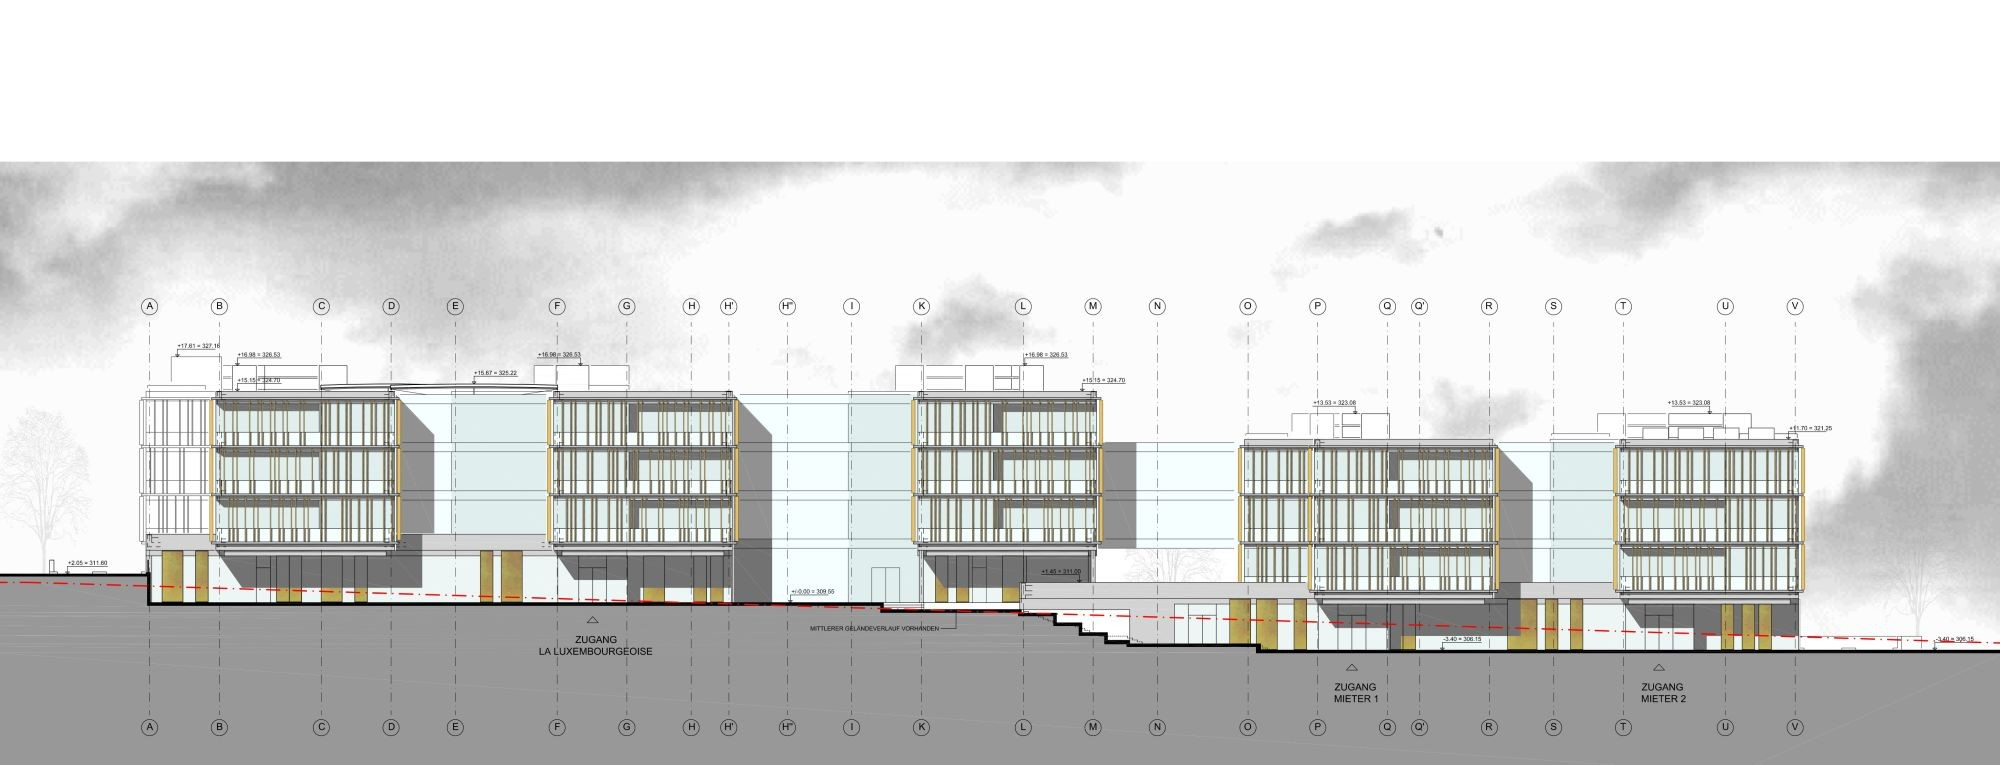 Building Elevation Plan Part - 41: Lalux Assurances Headquarters / Jim Clemes Atelier D´Architecture Et De  Design